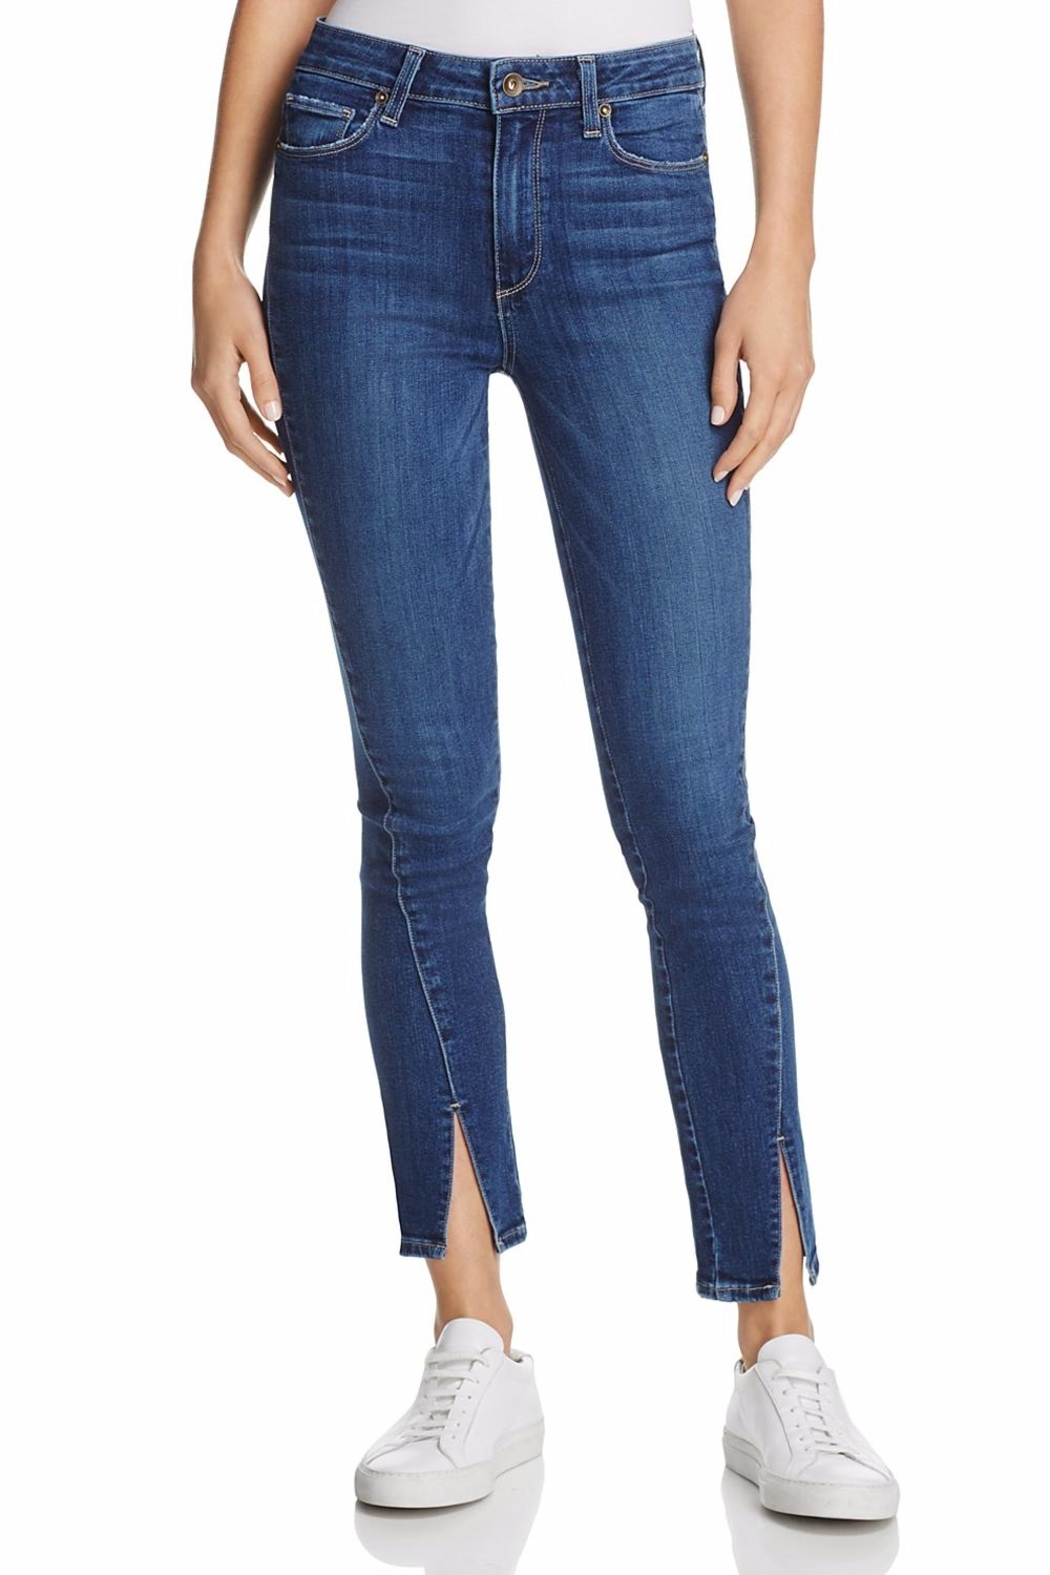 Paige Julia Twisted Seams Jeans - Front Cropped Image